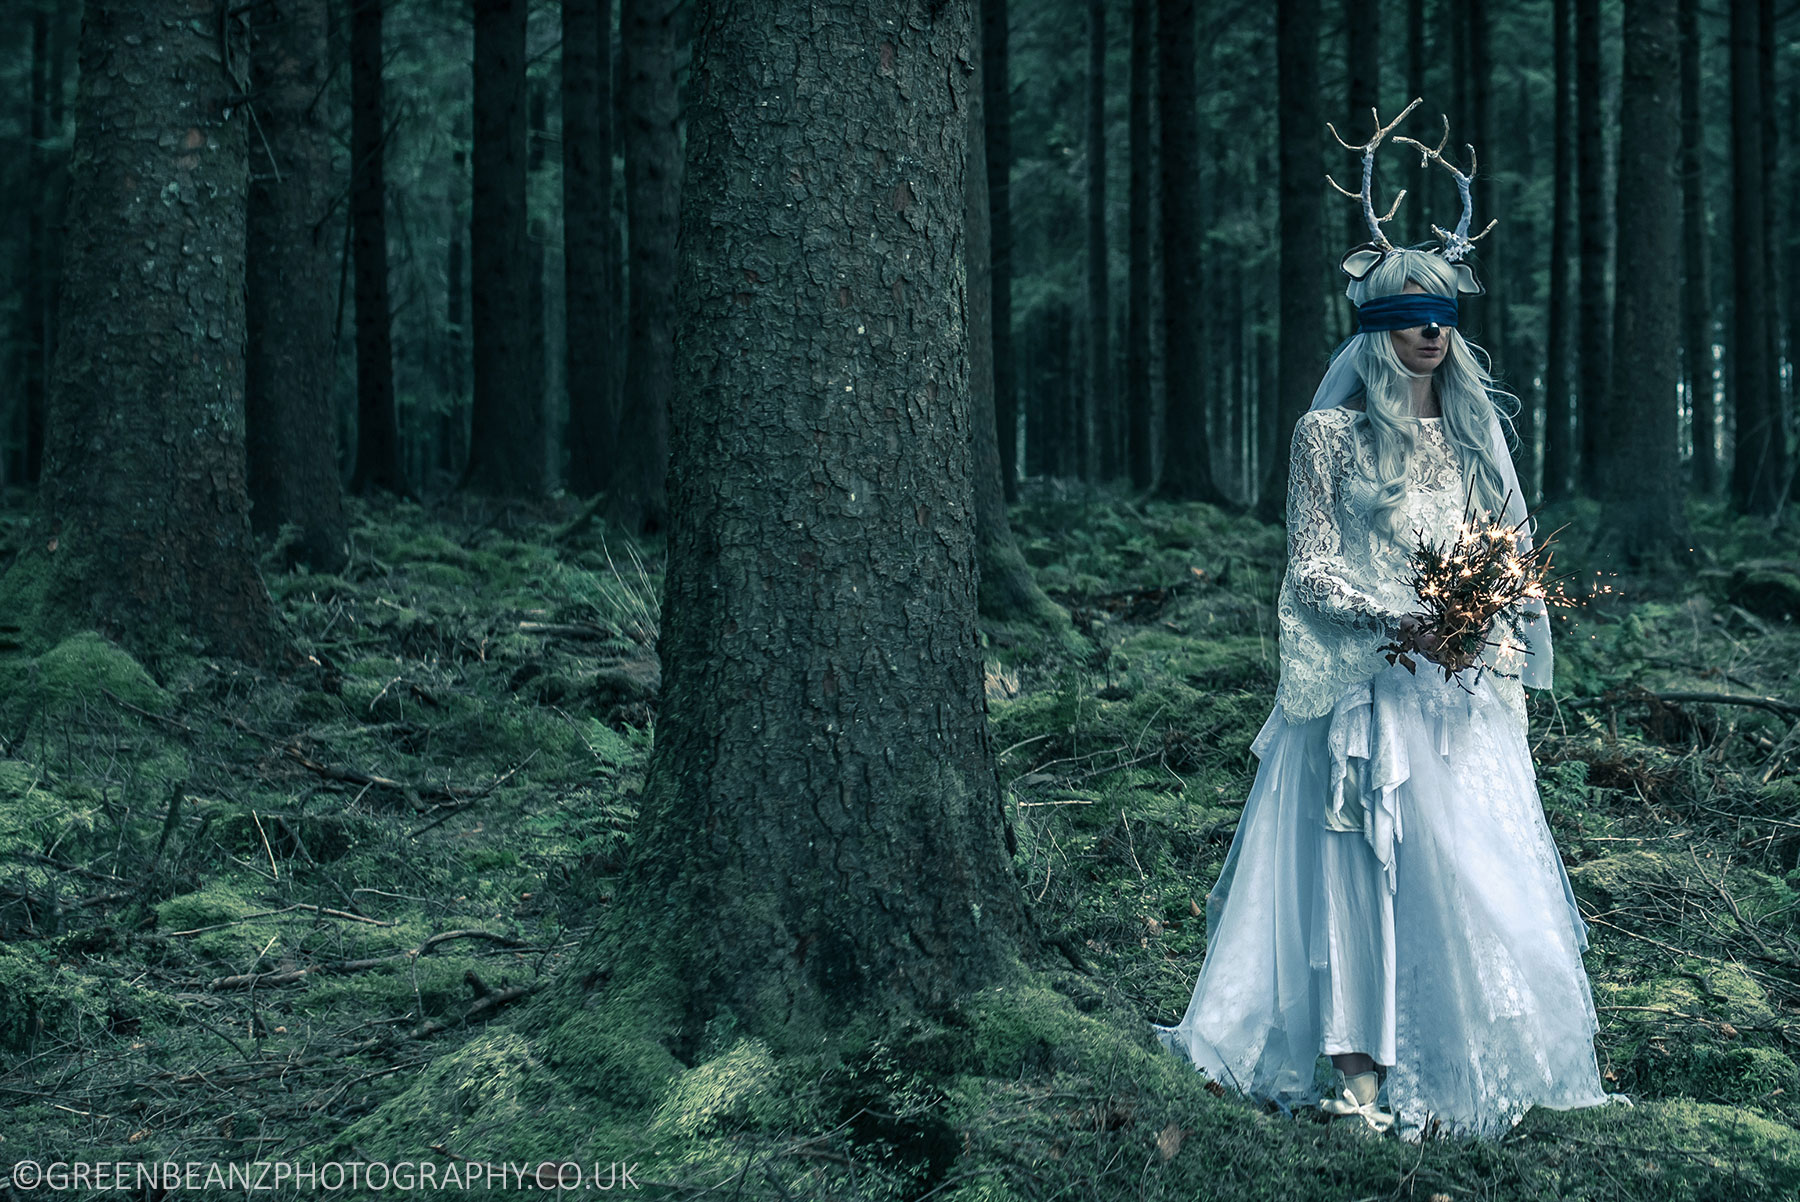 Plymouth Commercial photograph of Woman in white wedding dress in forest